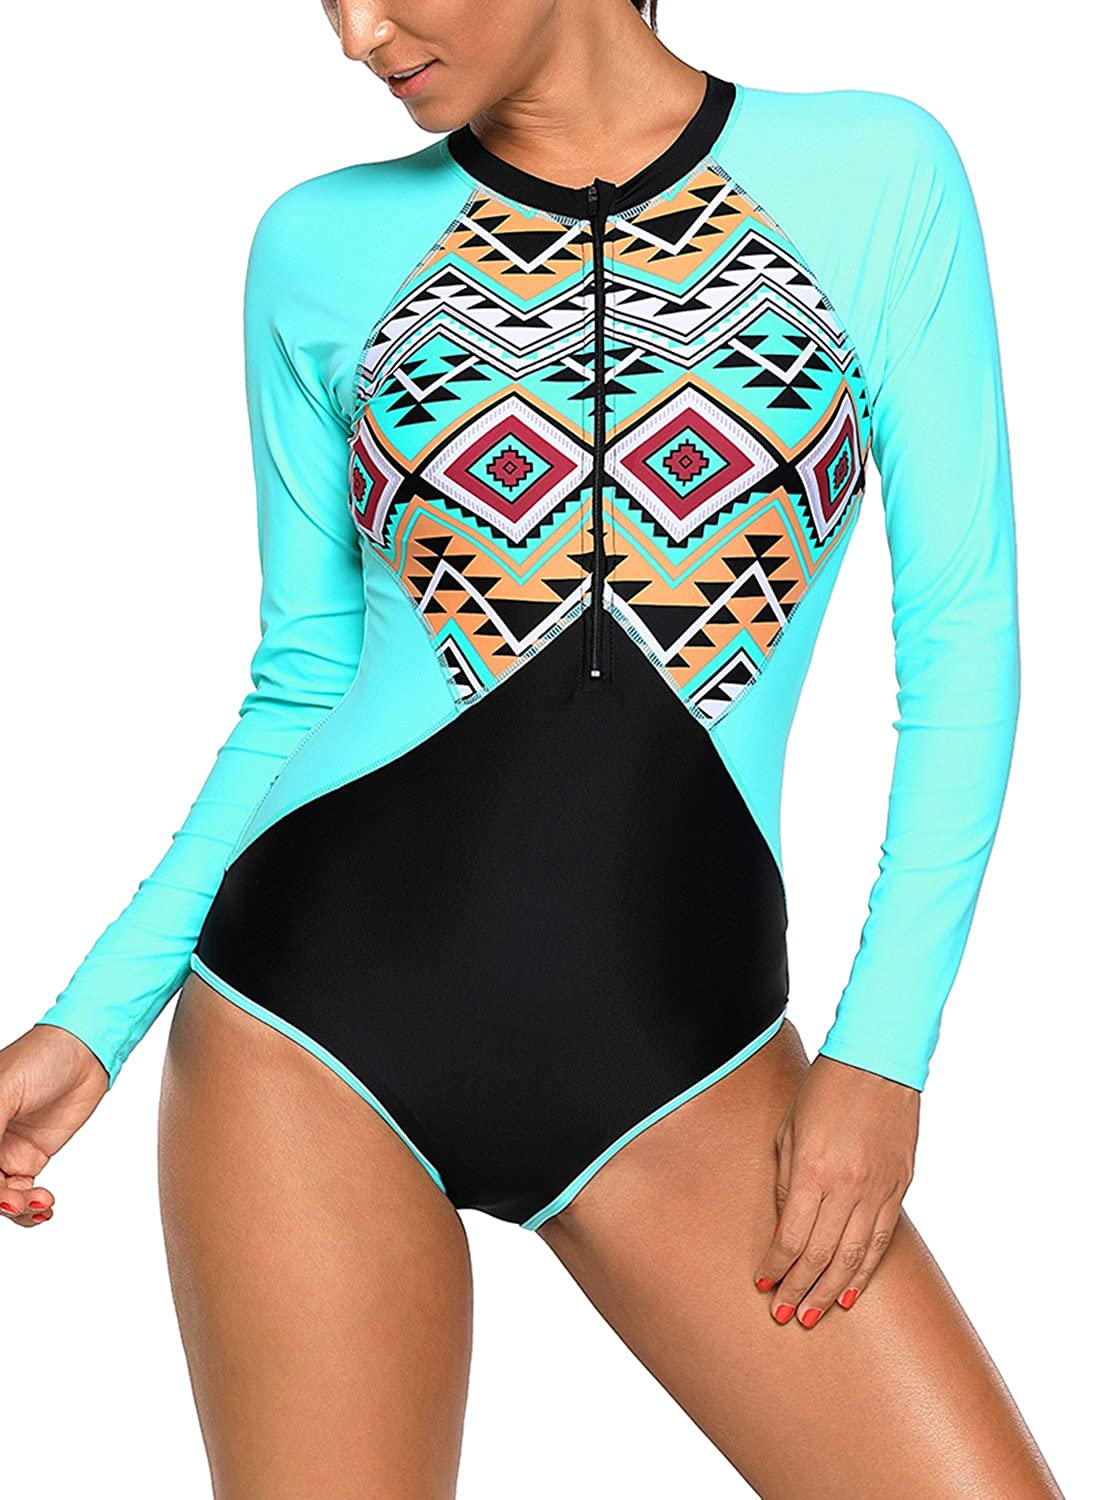 EVALESS Women's Zip Front Printed Long-Sleeve Rash Guard Shirt One Piece Swimsuit D410480